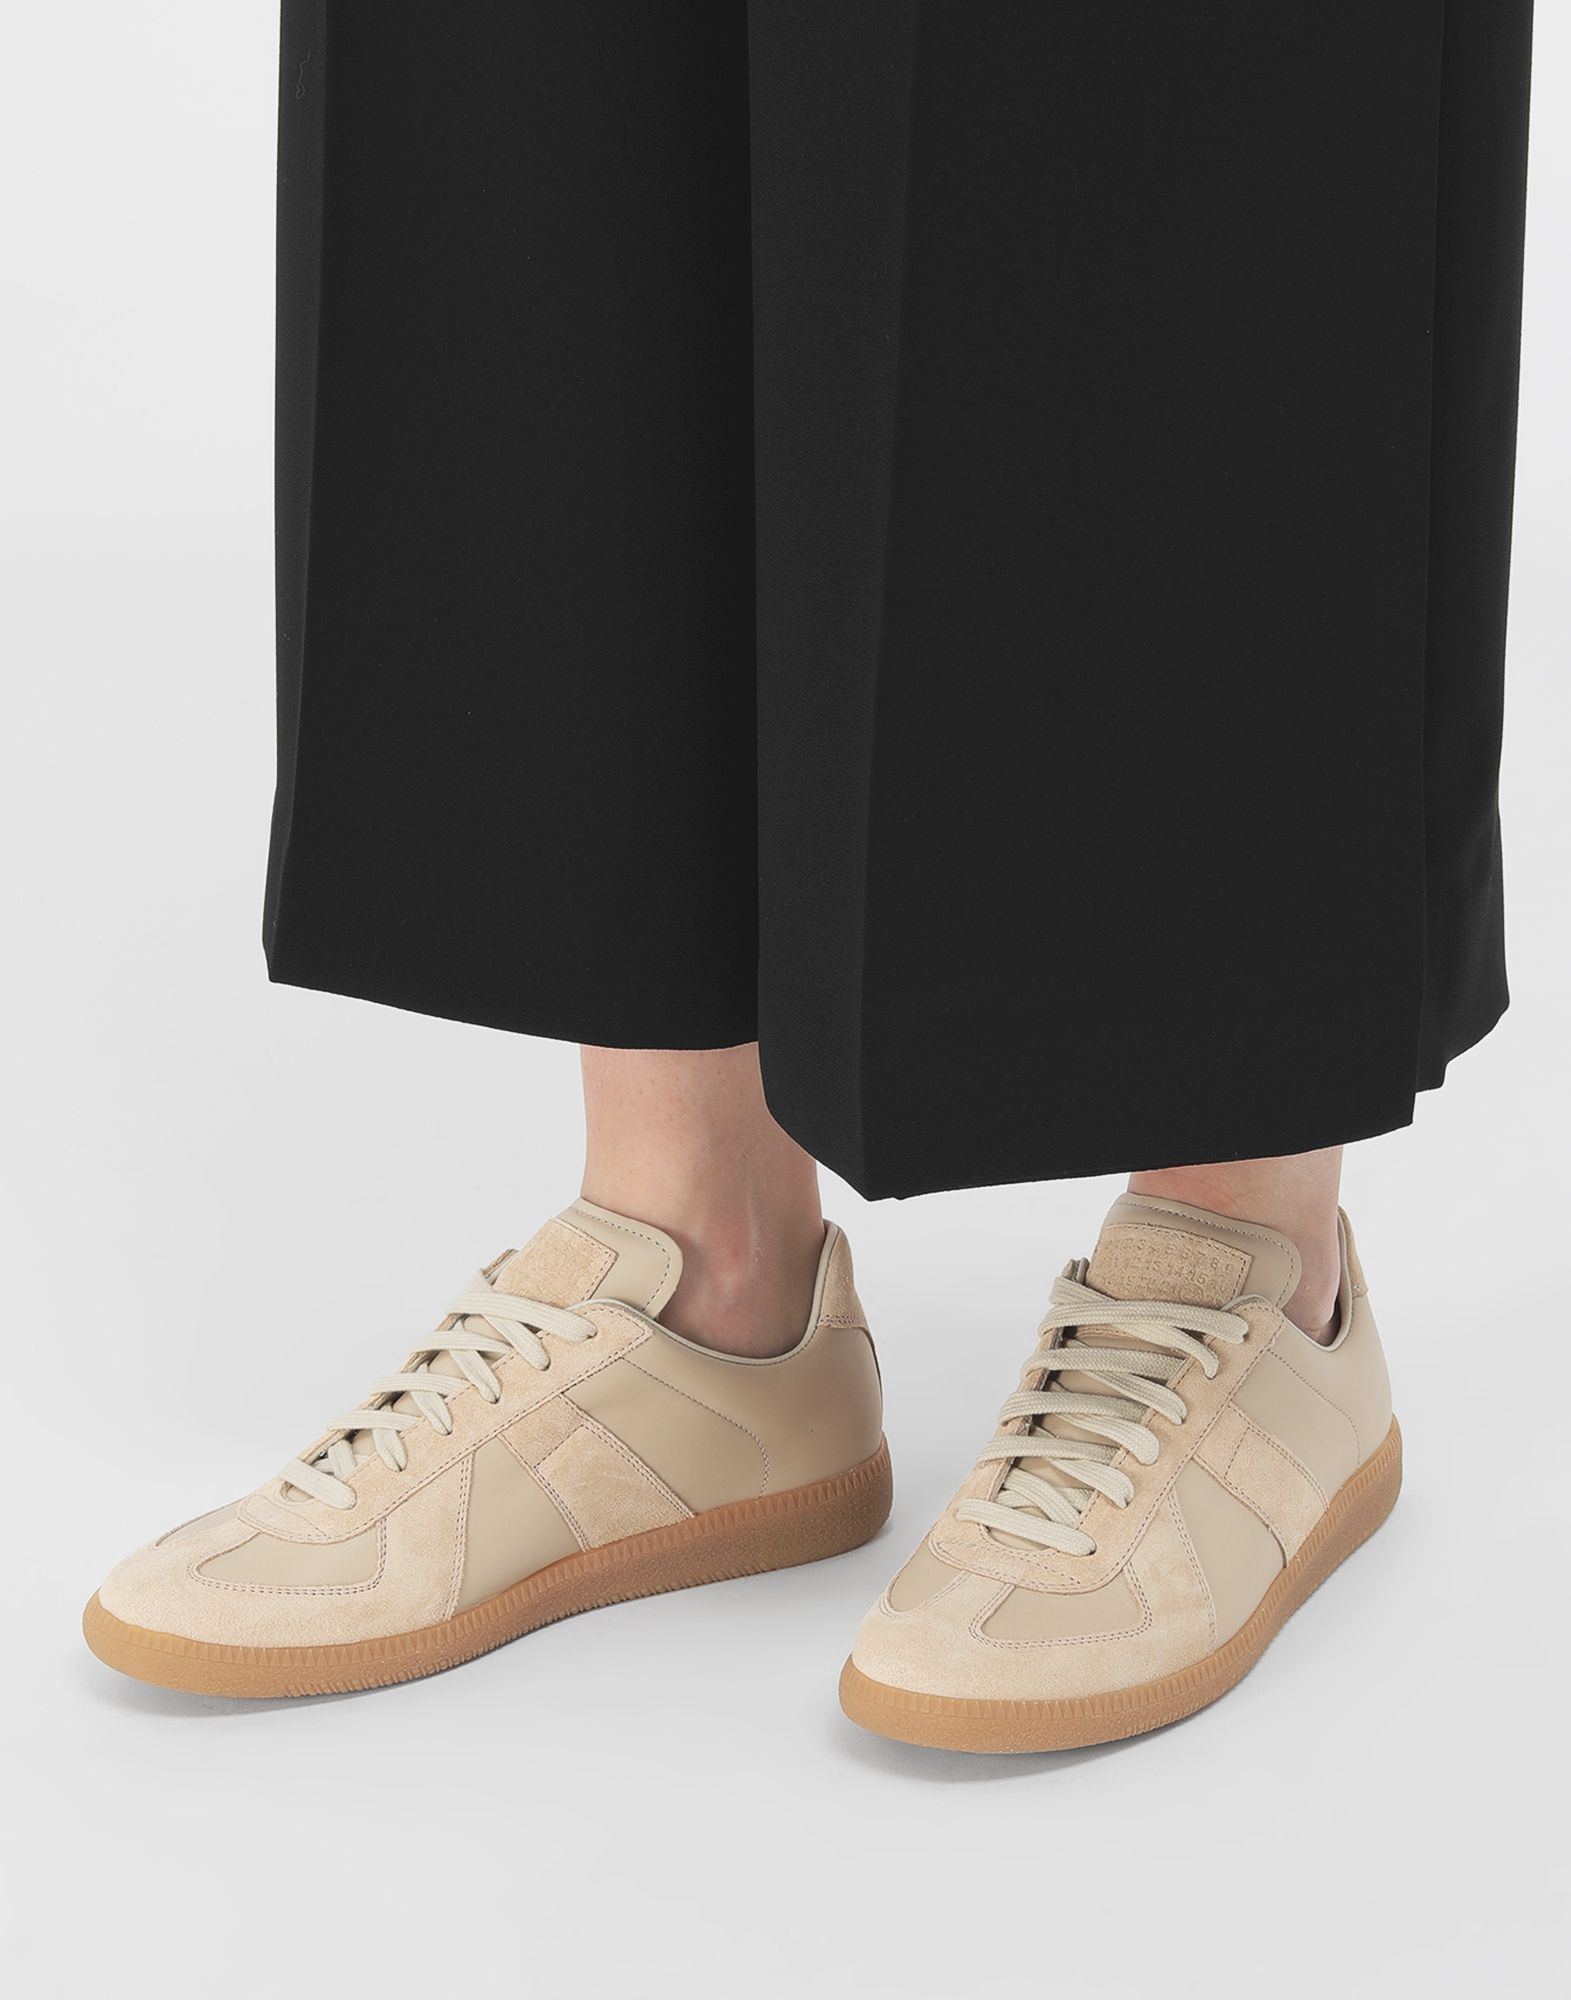 MAISON MARGIELA Calfskin and suede Replica sneakers Sneakers Woman r